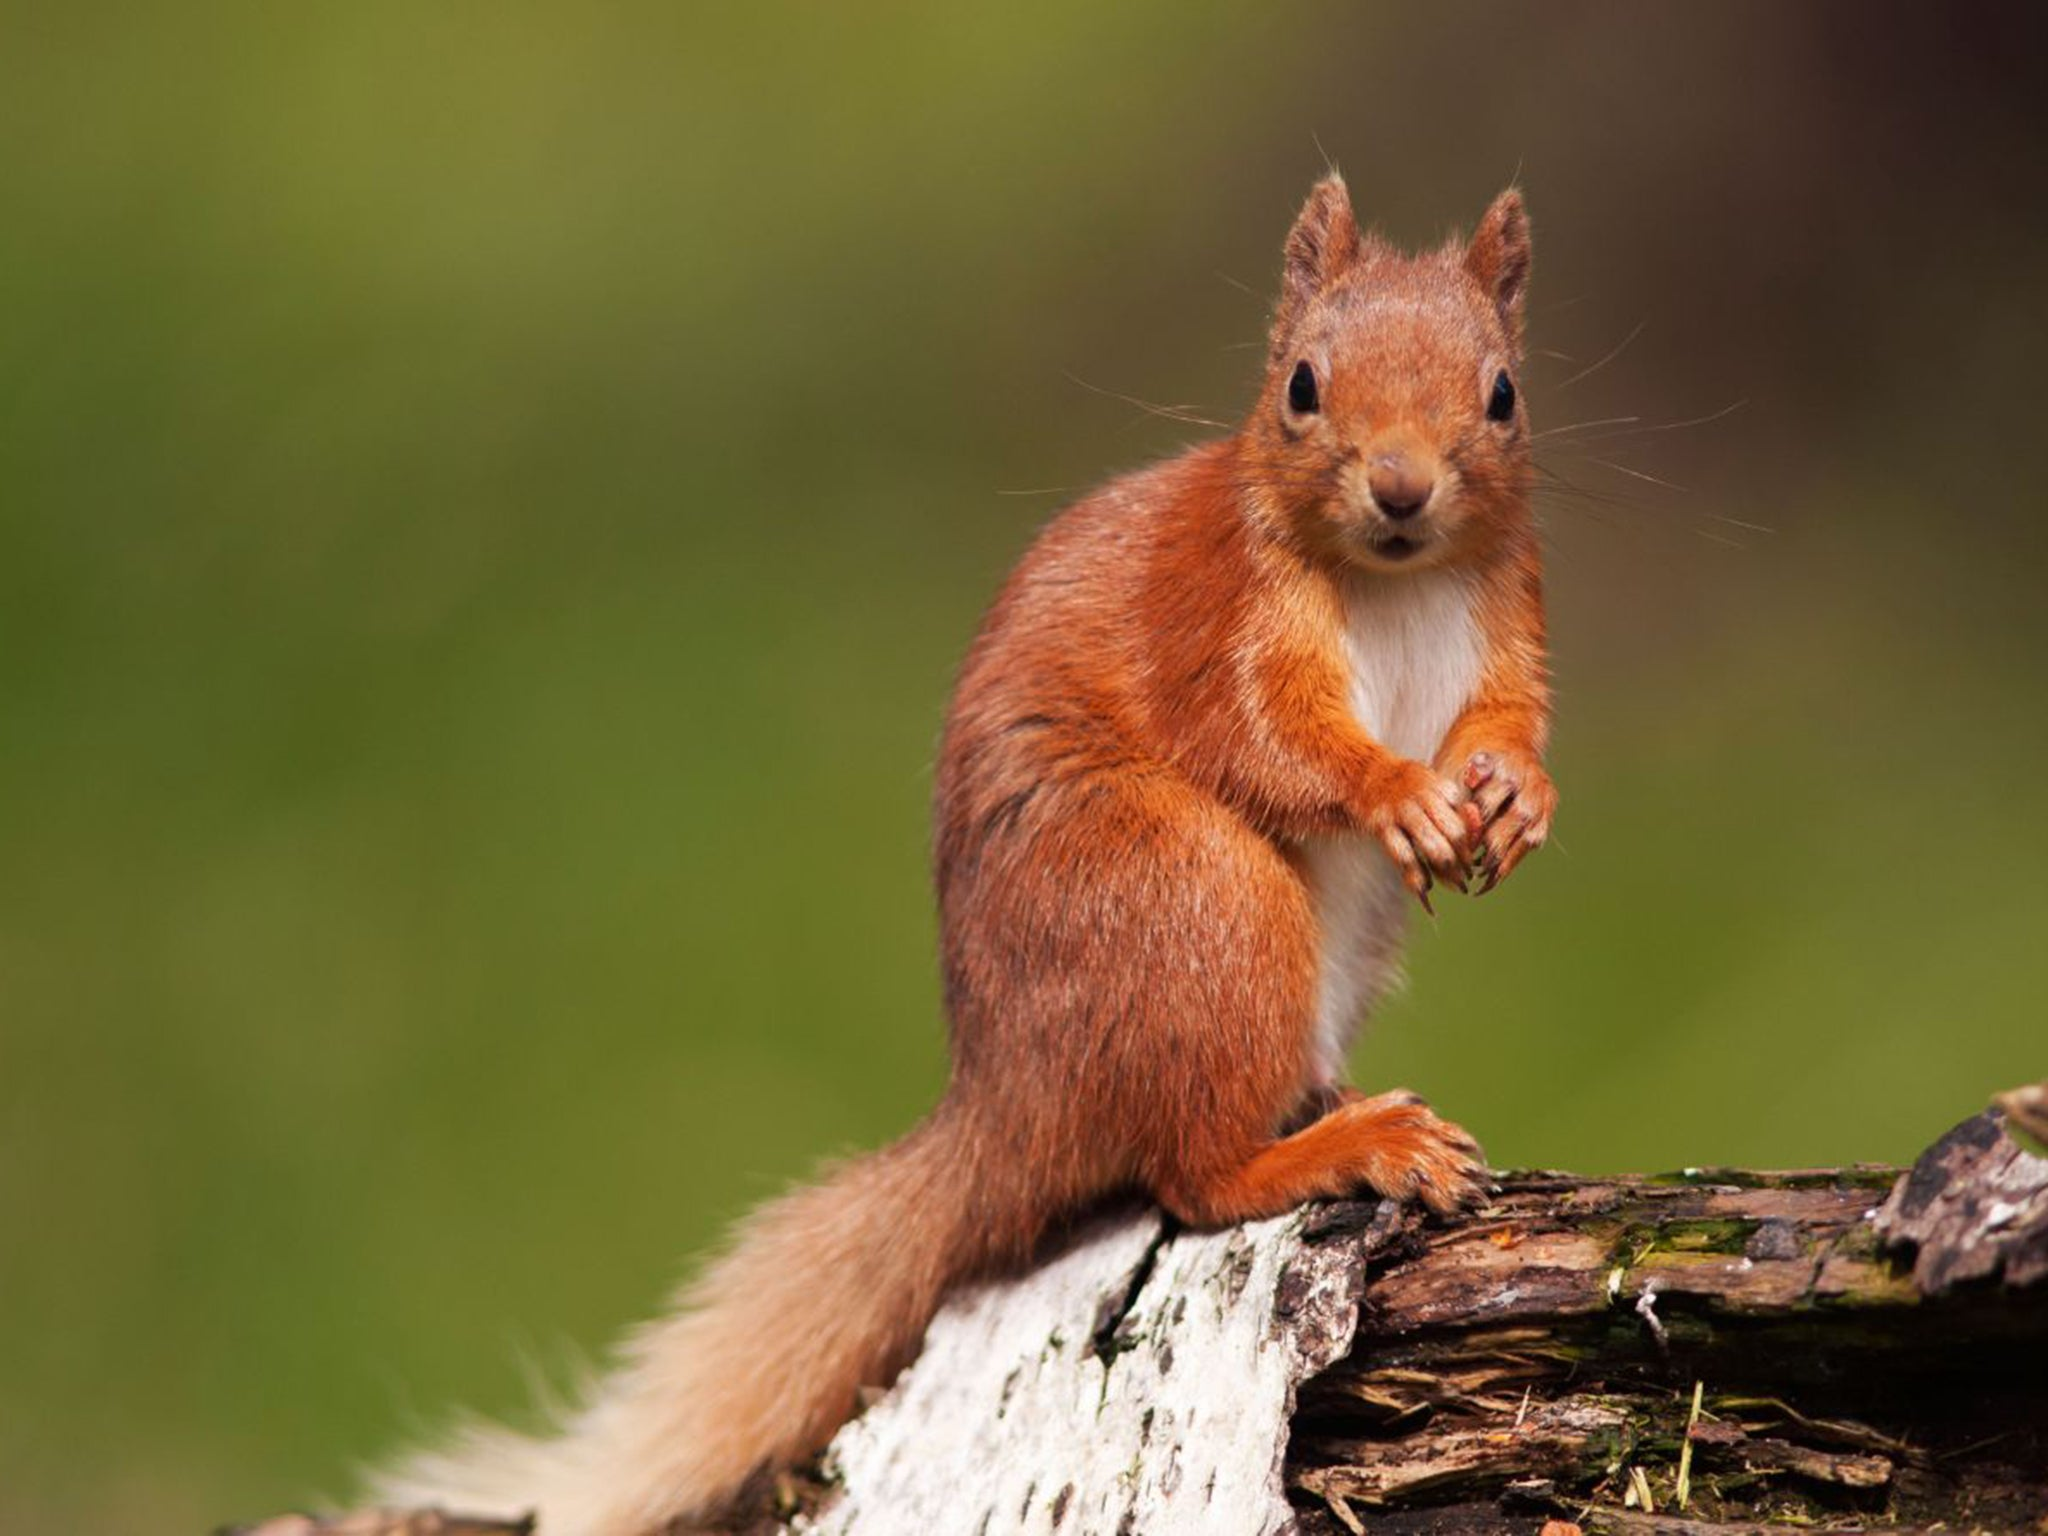 Red Squirrels In The Uk Carry Leprosy Scientists Discover The